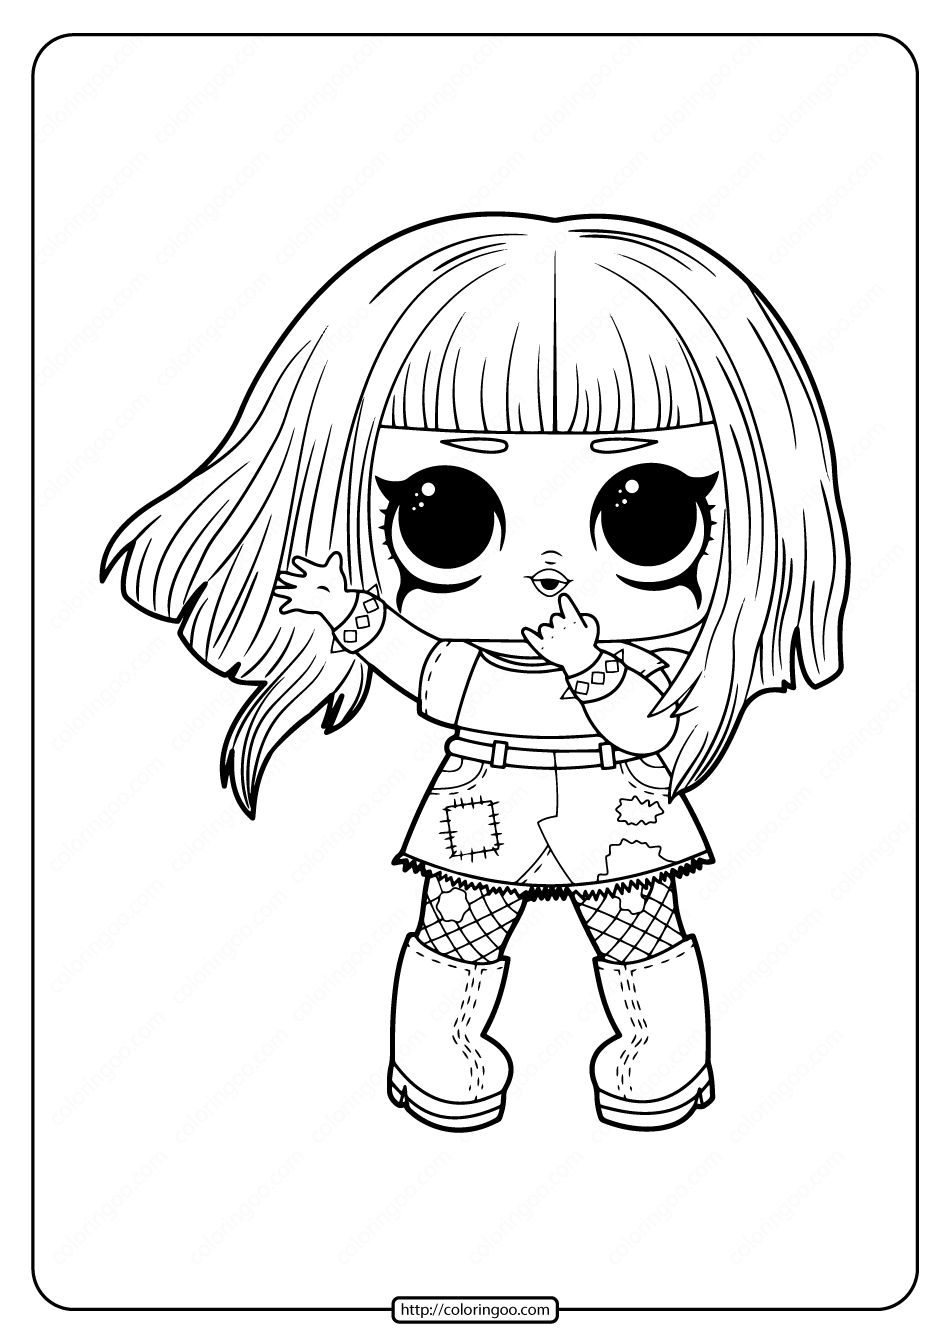 Free Printable Lol Surprise Dolls Coloring Pages High Quality Free Printable Pdf Coloring Drawing Pai Cool Coloring Pages Cute Coloring Pages Coloring Pages